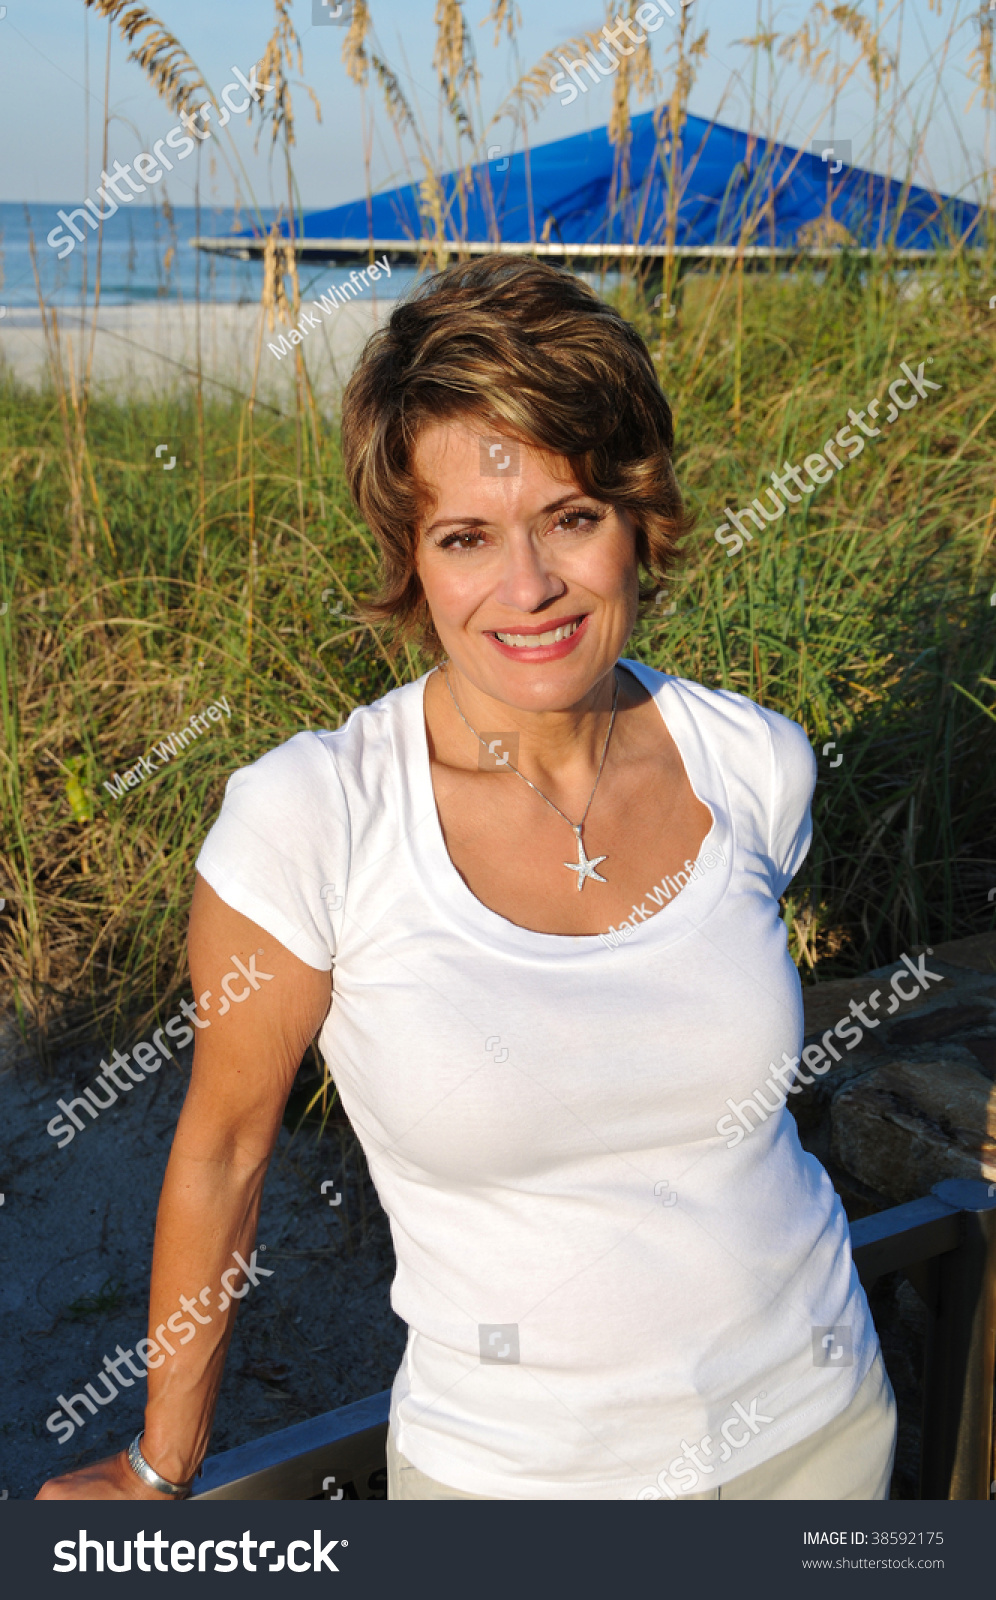 Attractive Woman enjoying the early morning sun at the beach